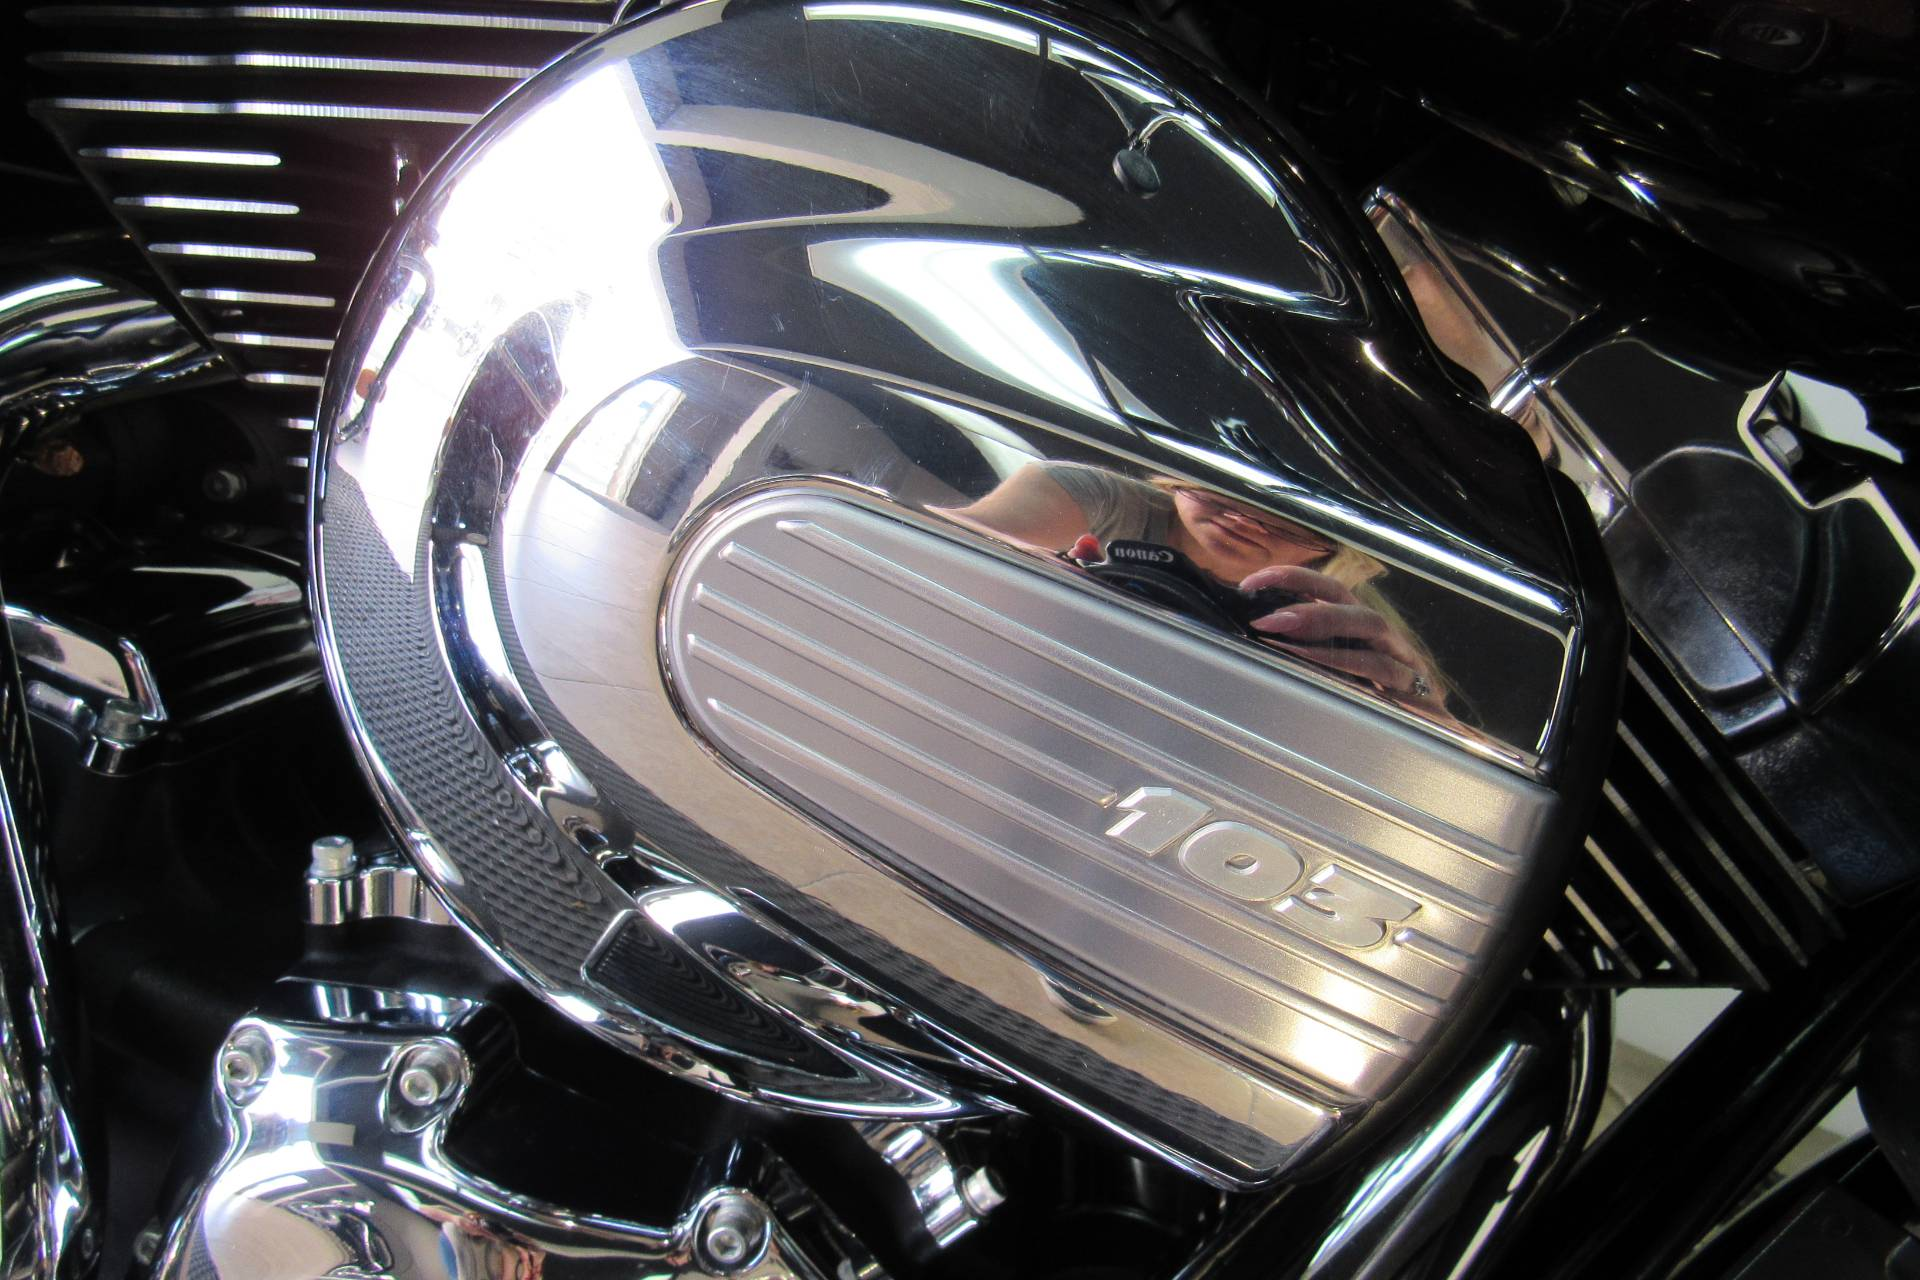 2015 Harley-Davidson Ultra Limited Low in Temecula, California - Photo 6